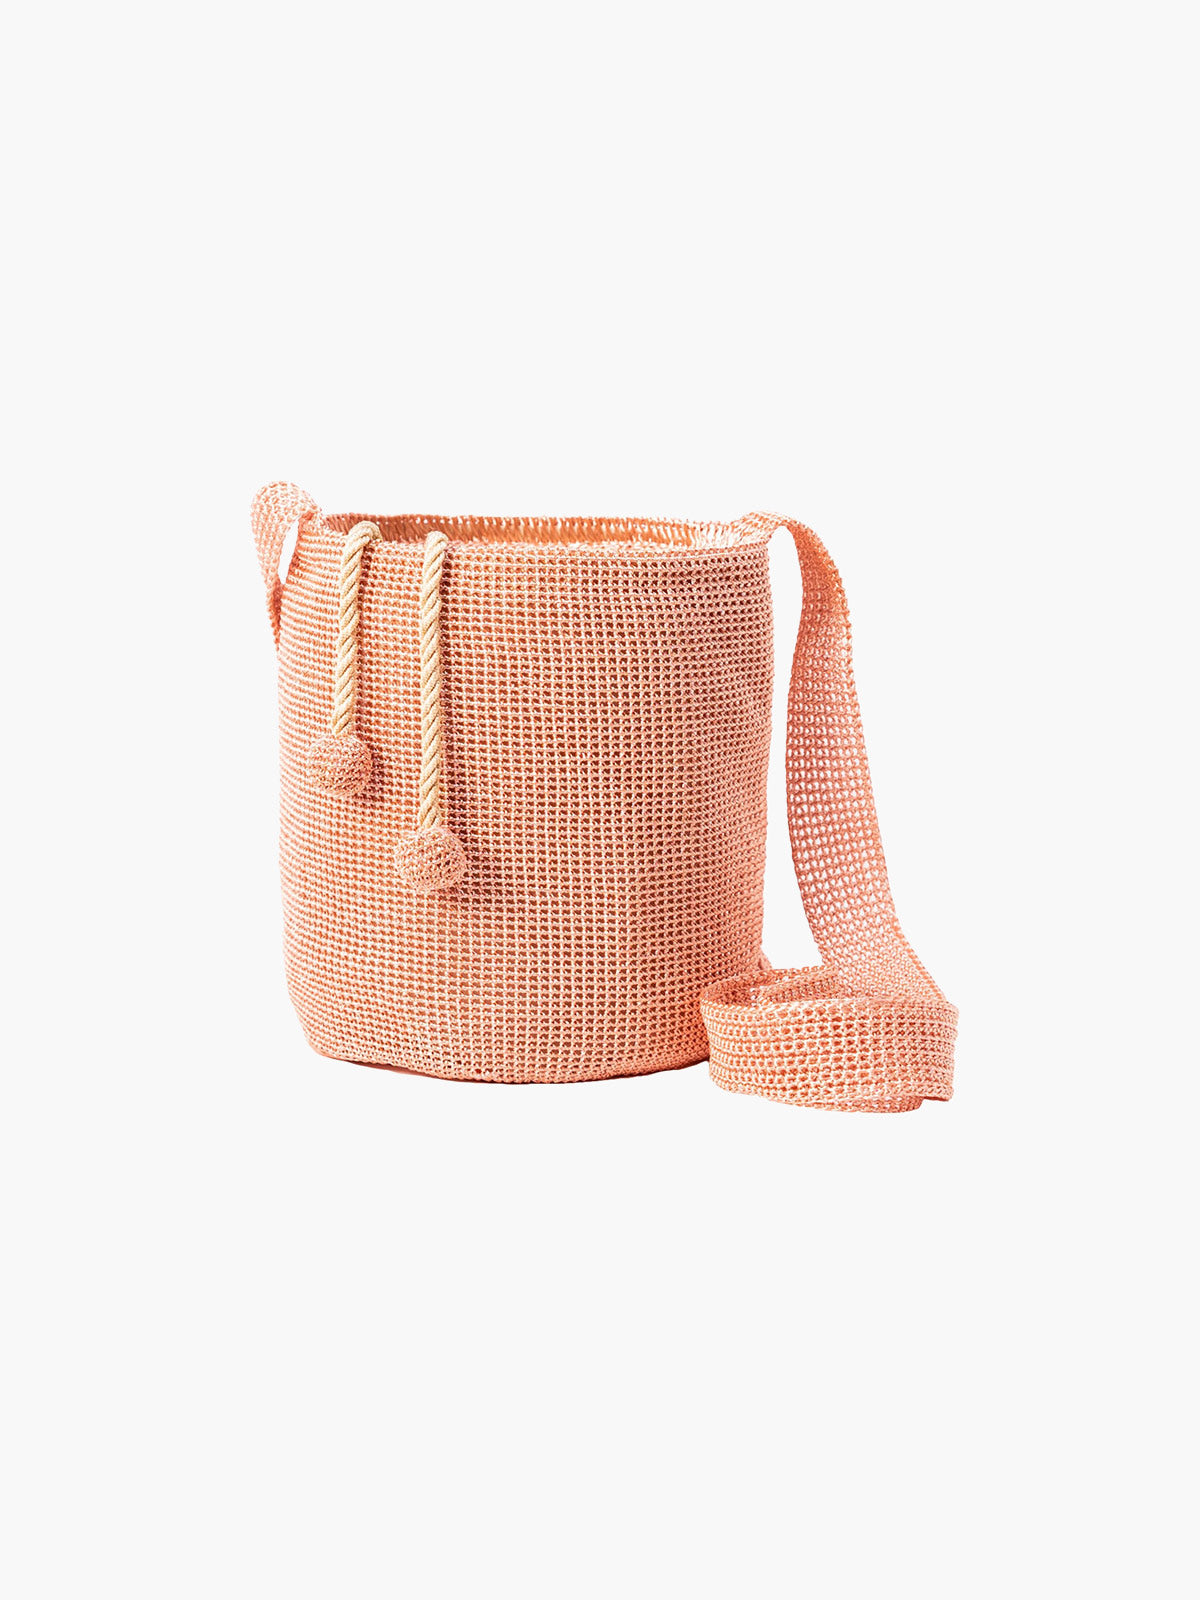 Traditional Weave Mochila | Rose Gold